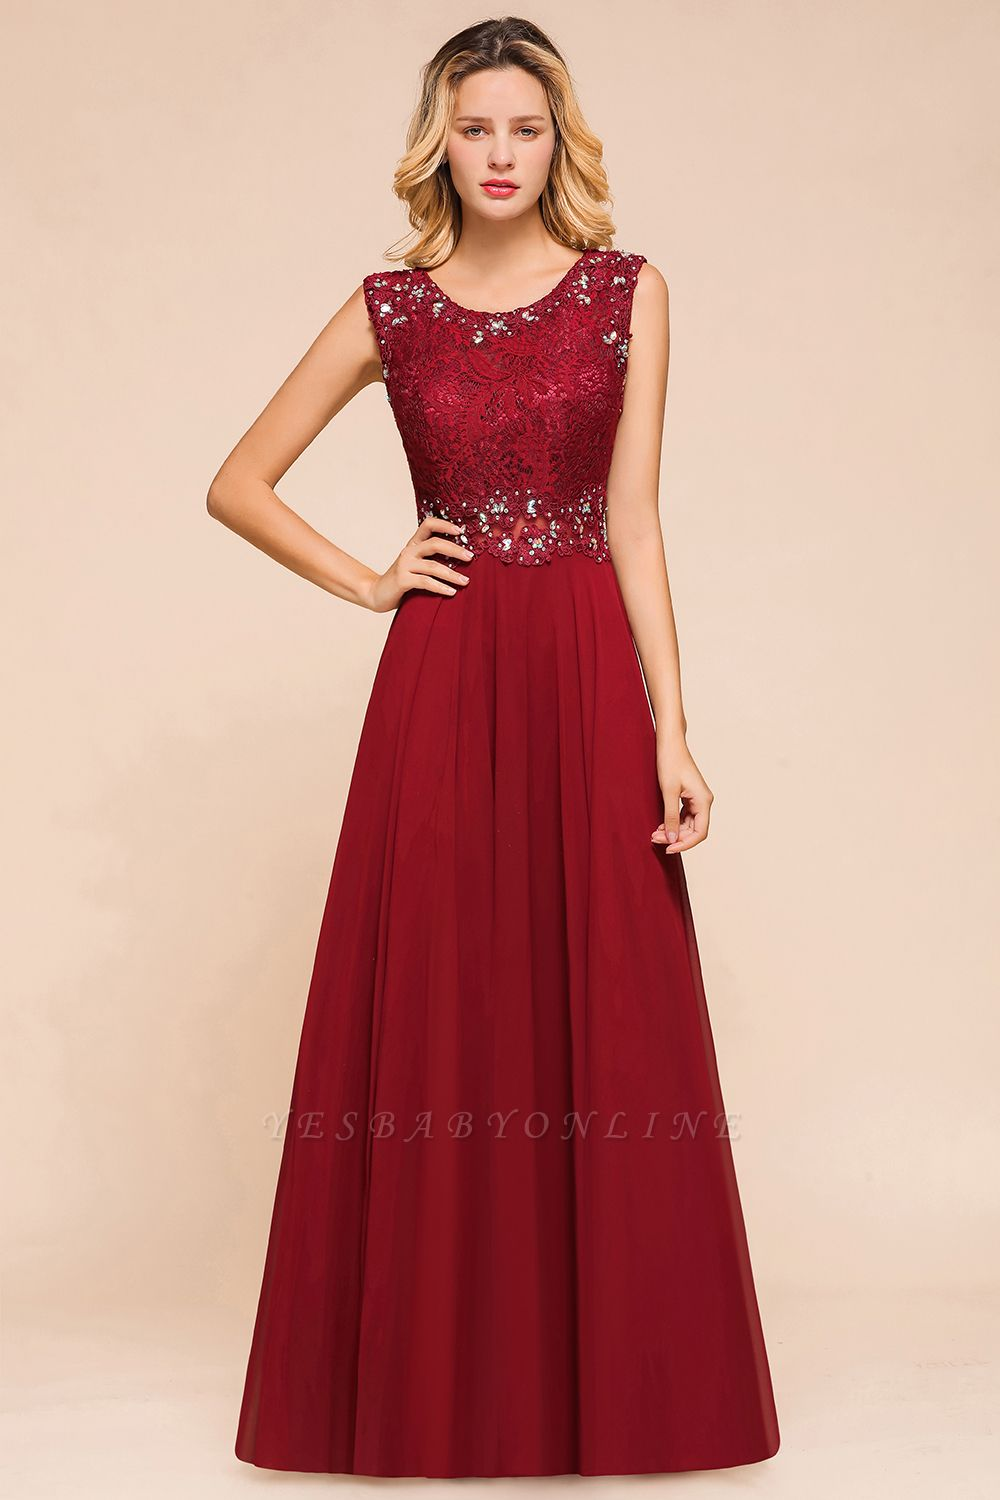 Burgundy Jewel Sleeveless Applique Lace Floor Length Prom Dresses | Beading Cheap Party Dresses